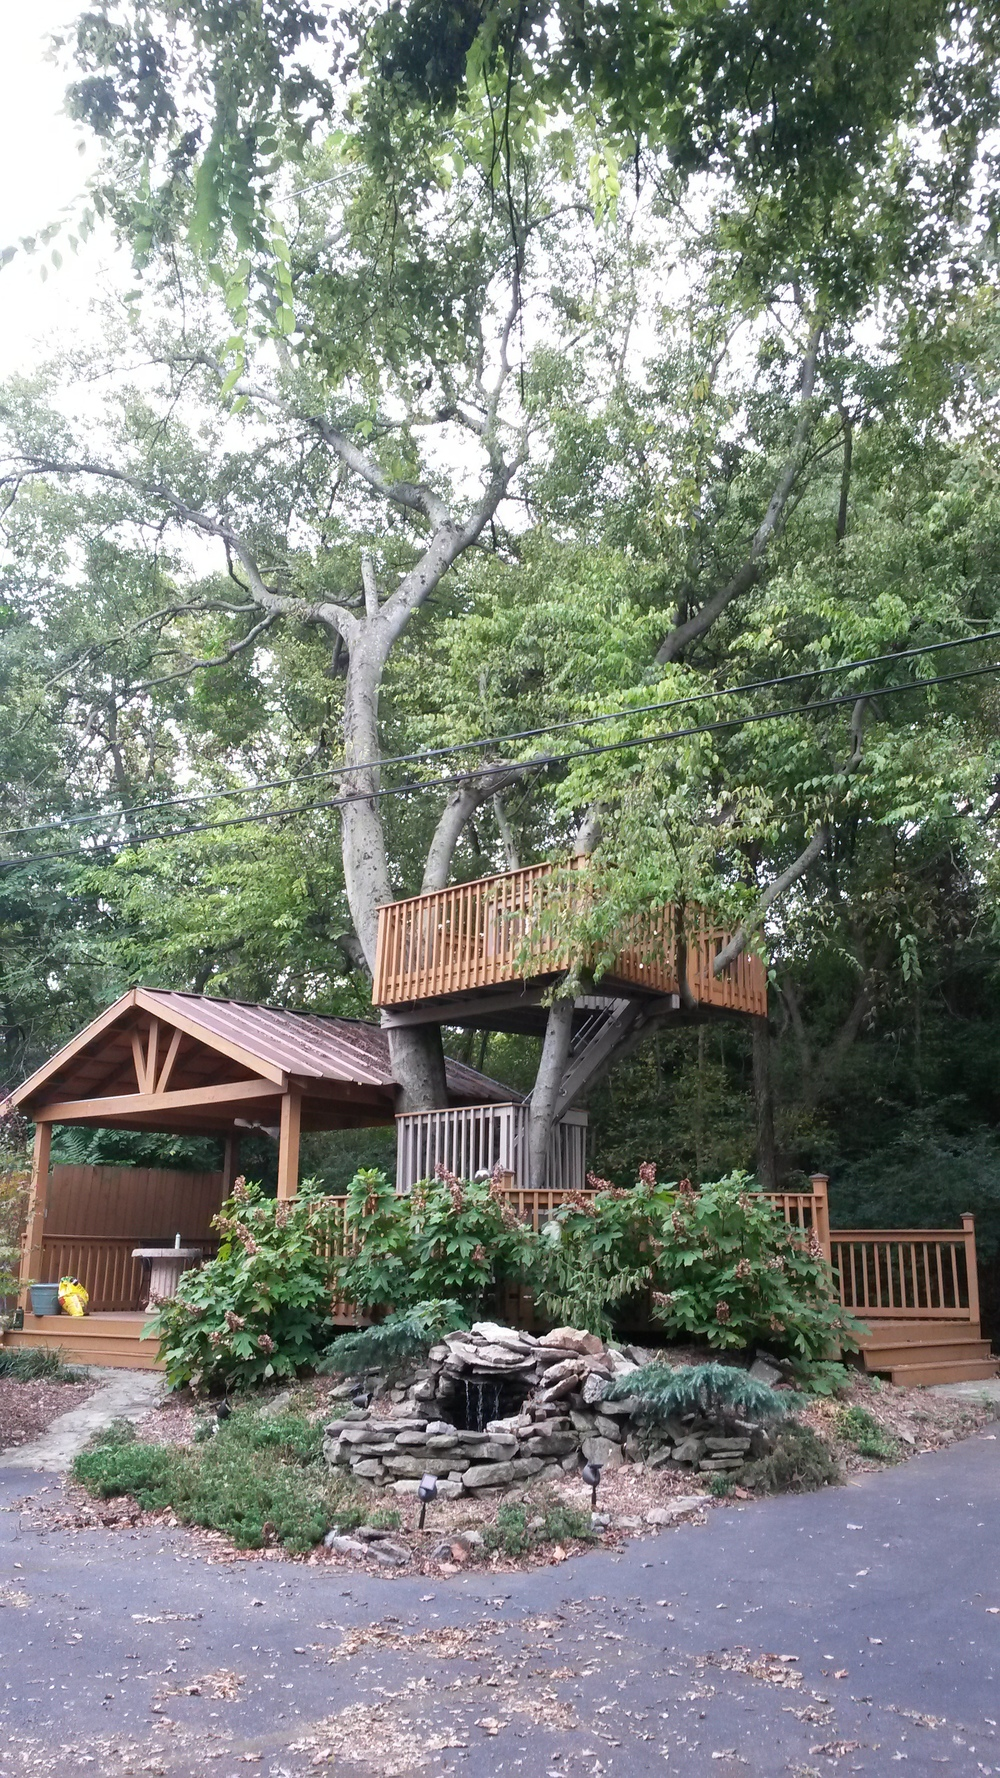 Creative Caffeine's Tree house!